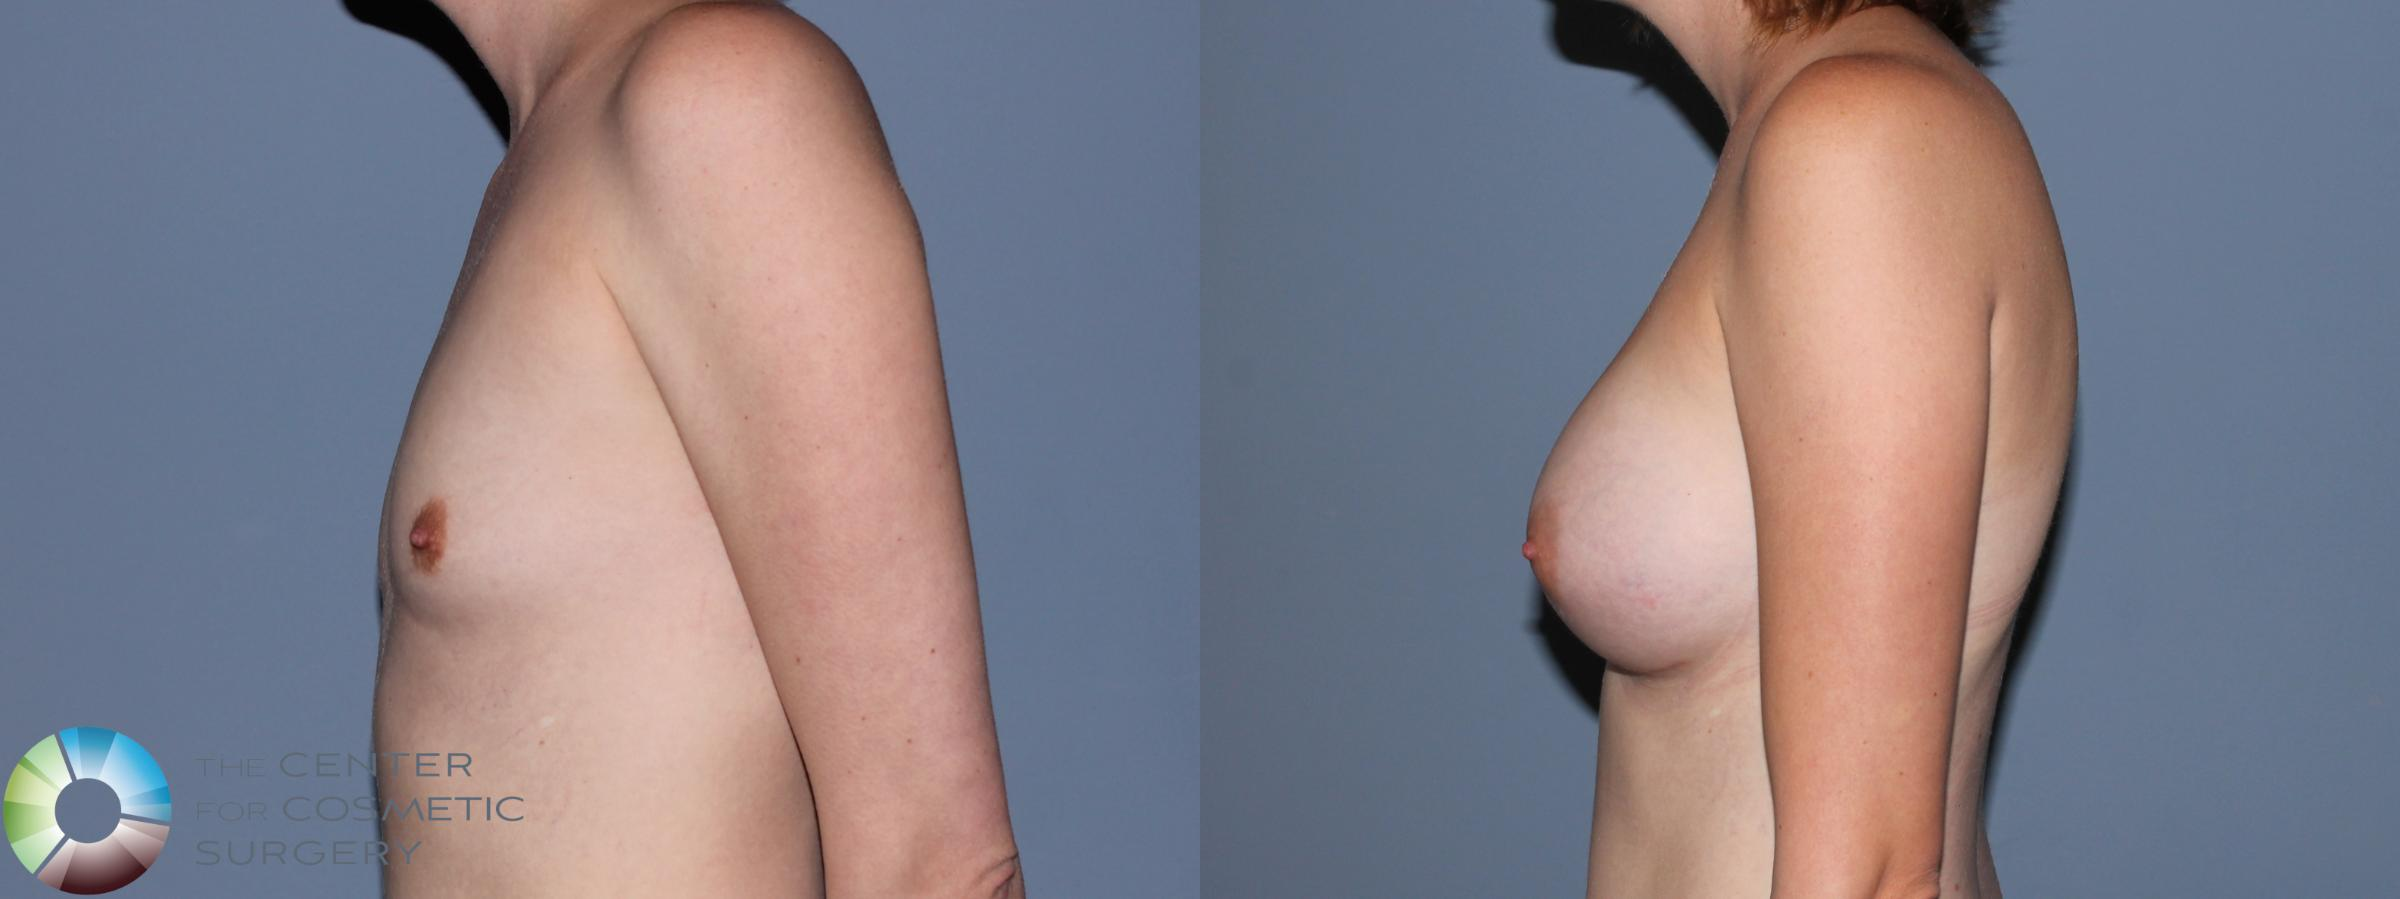 Breast Augmentation Case 707 Before & After View #3 | Golden, CO | The Center for Cosmetic Surgery